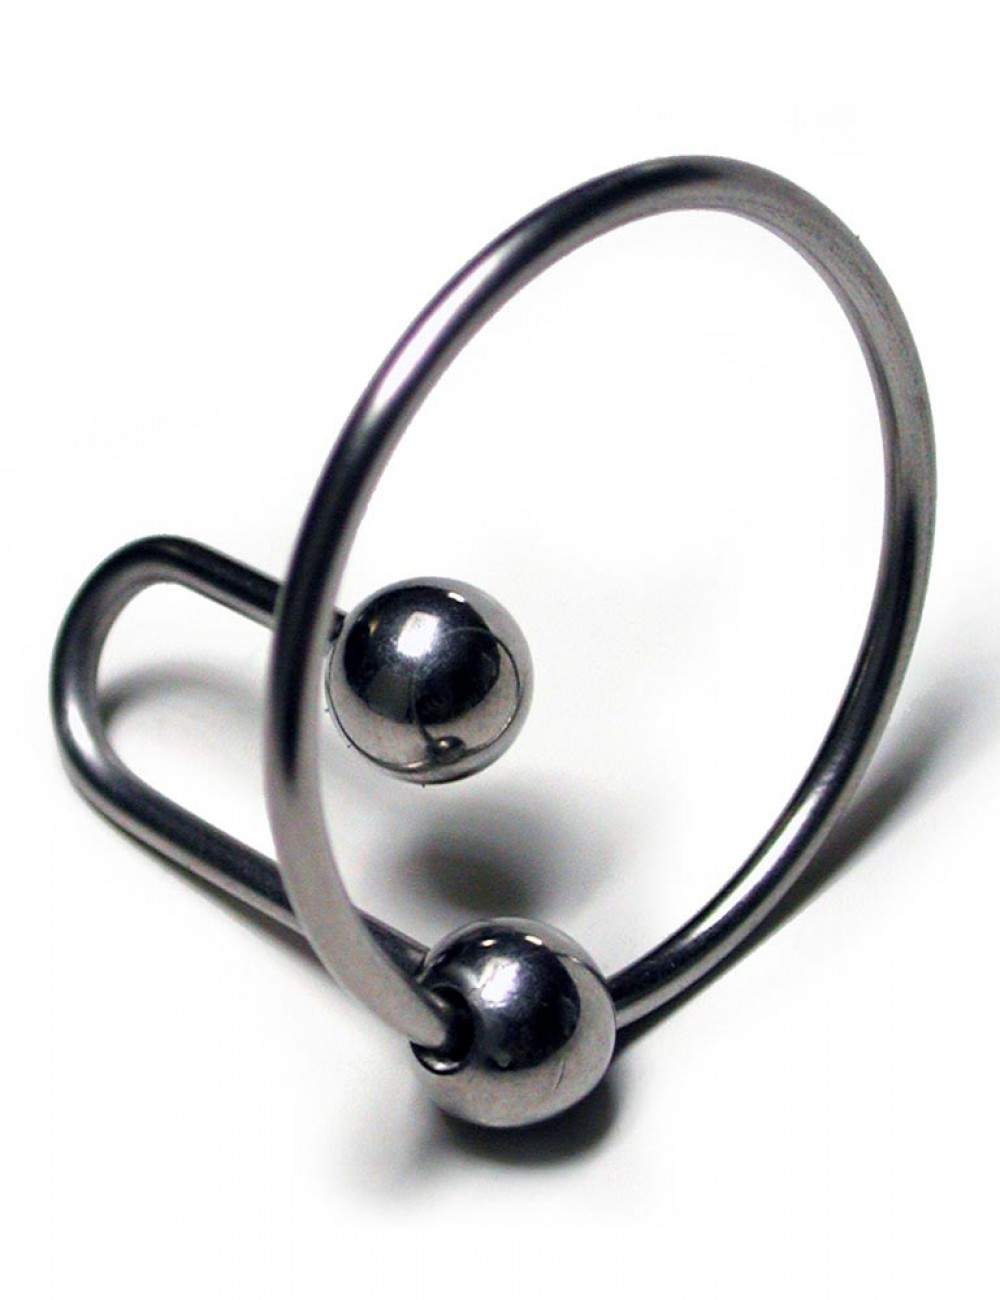 Double Ball Headring with Sperm Stopper